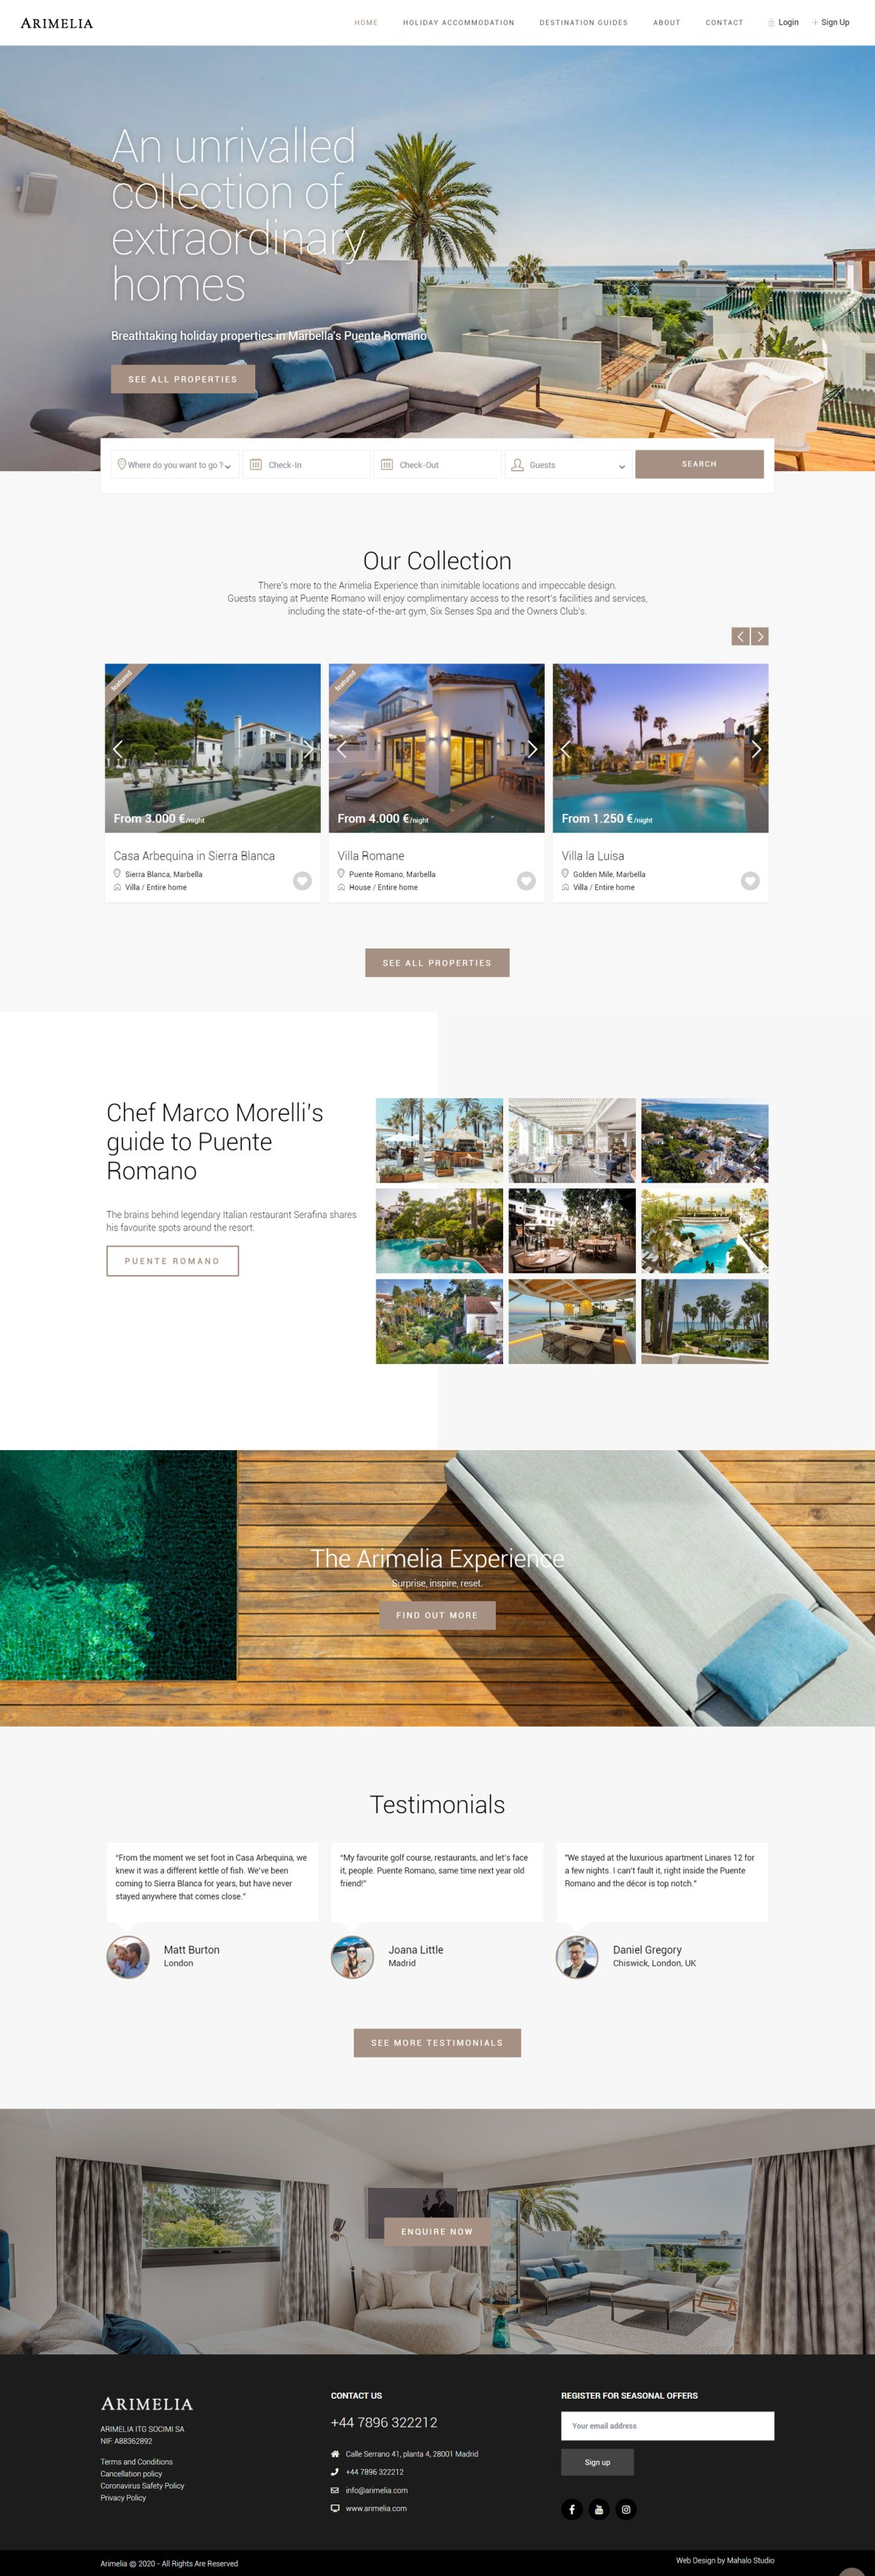 Arimelia luxury rentals Marbella - Real estate website template